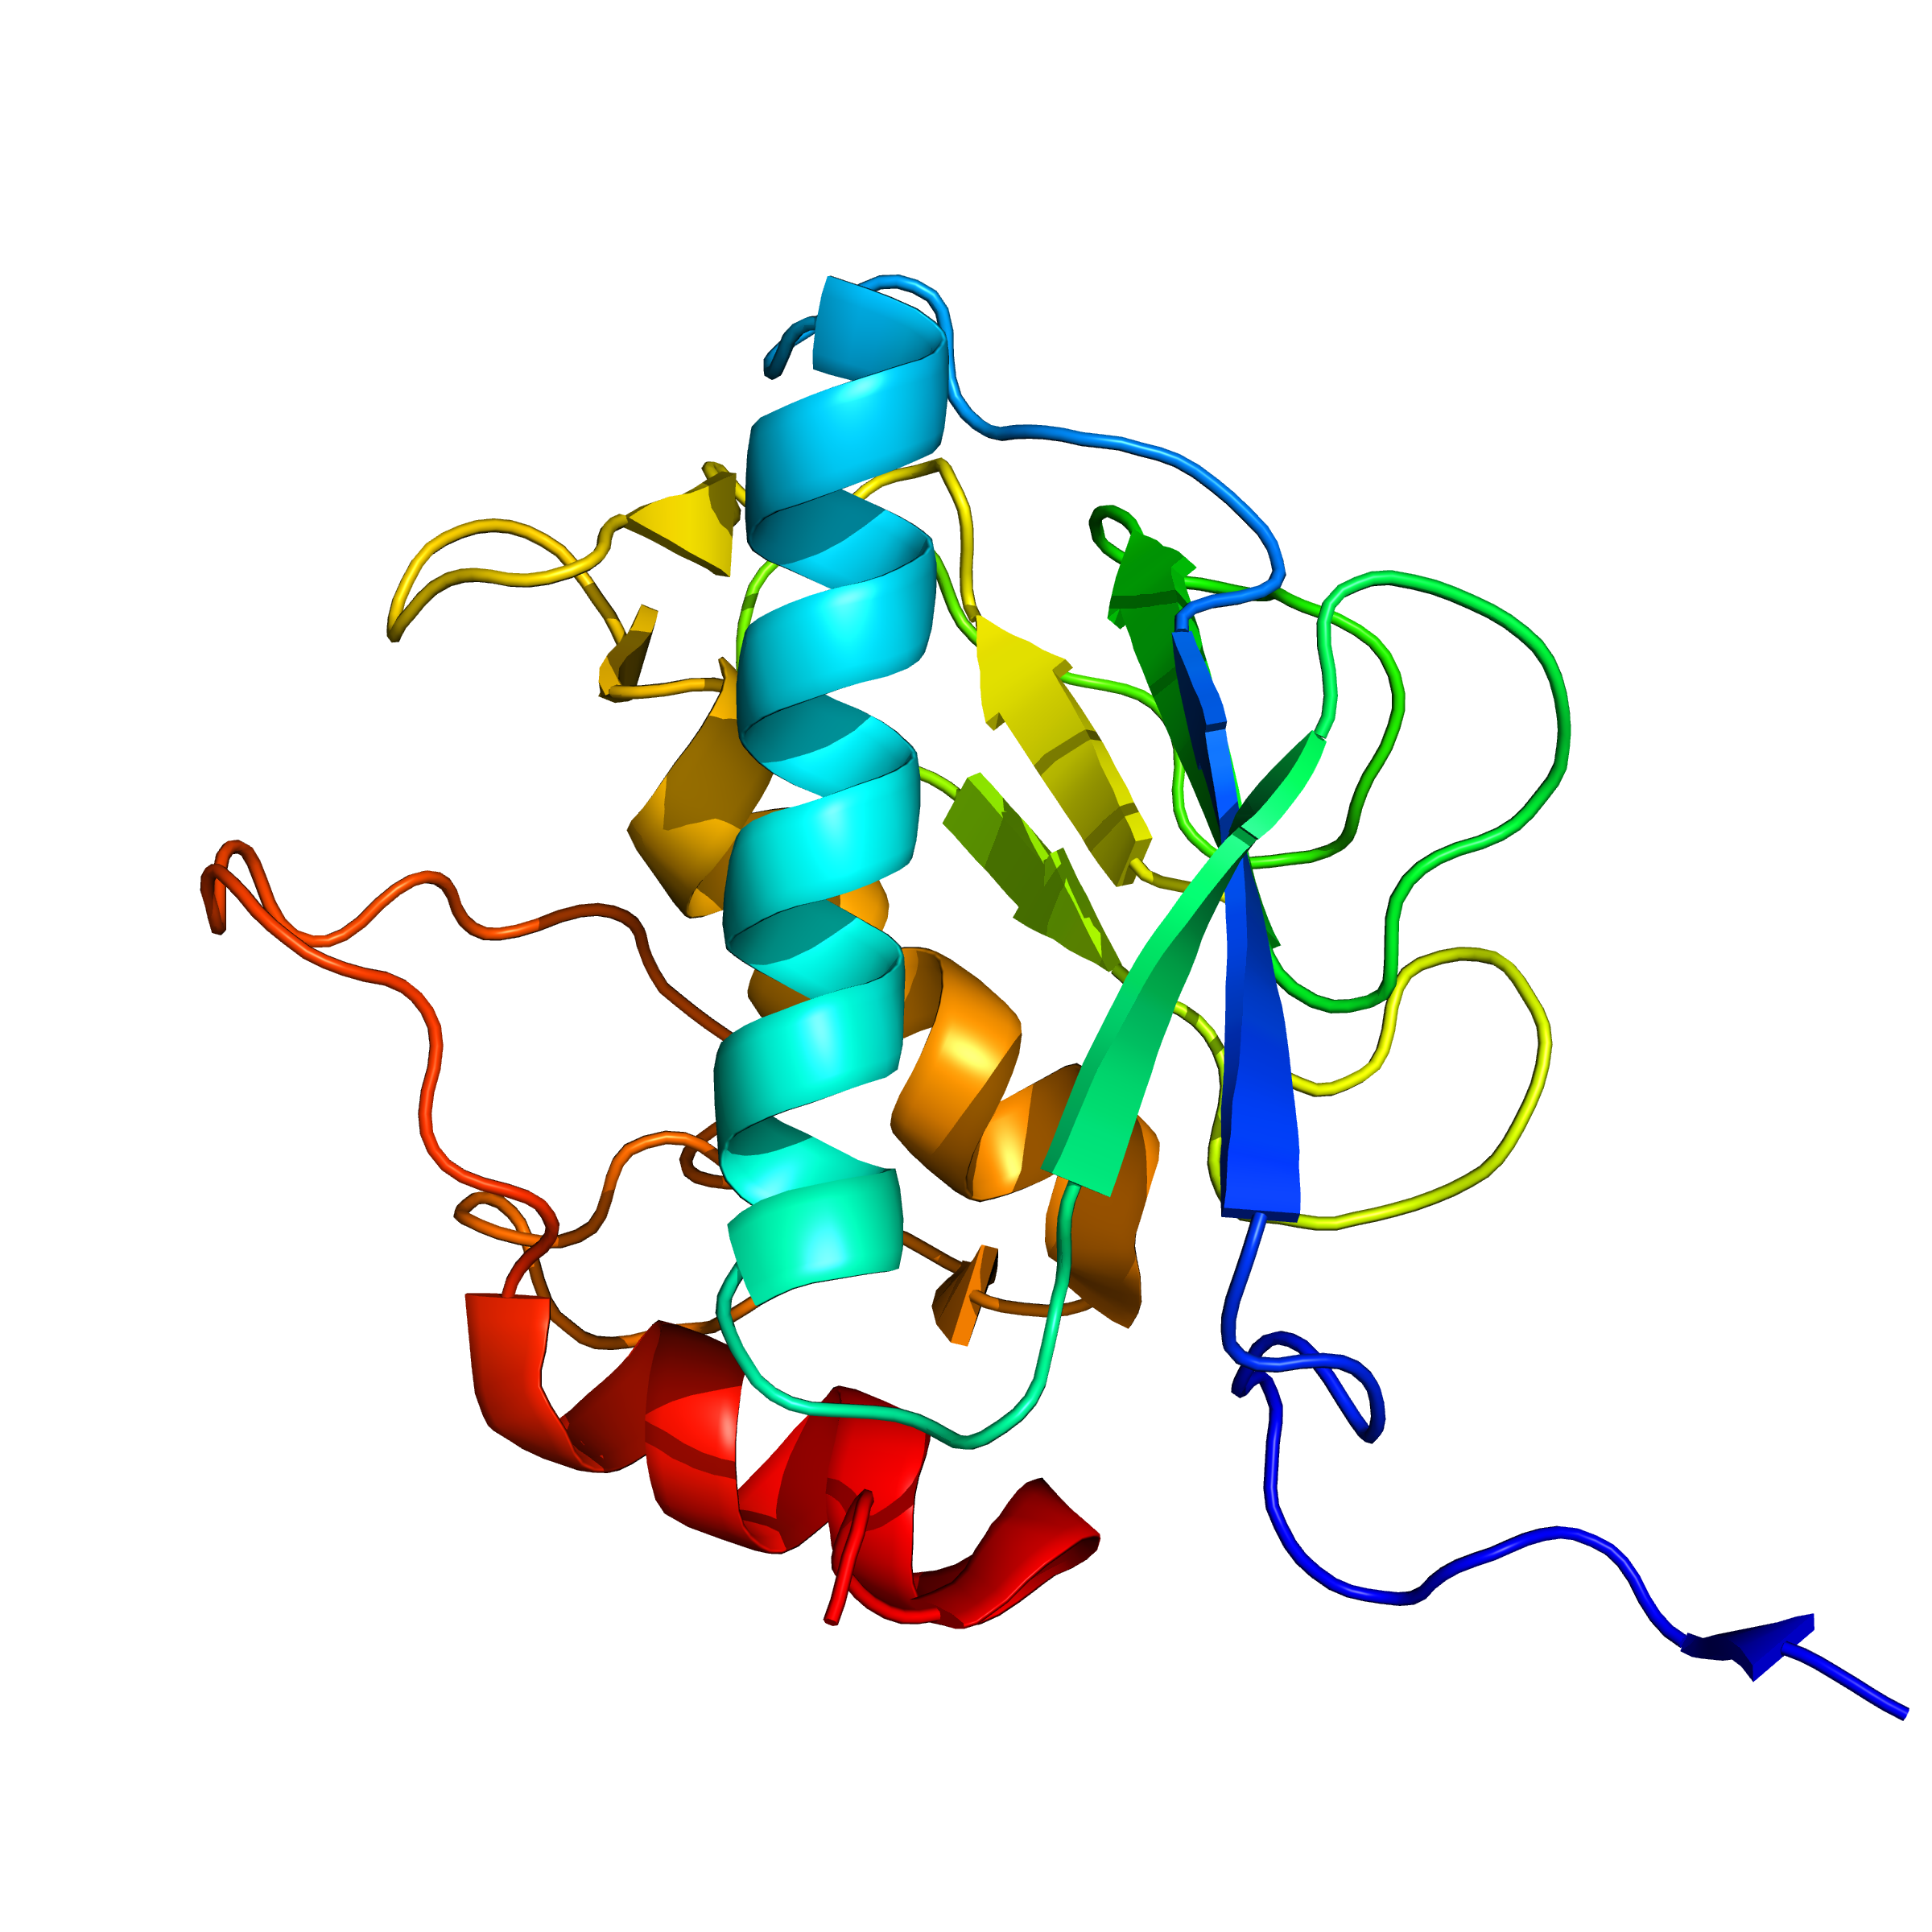 mmp13 | recombinant proteins offer